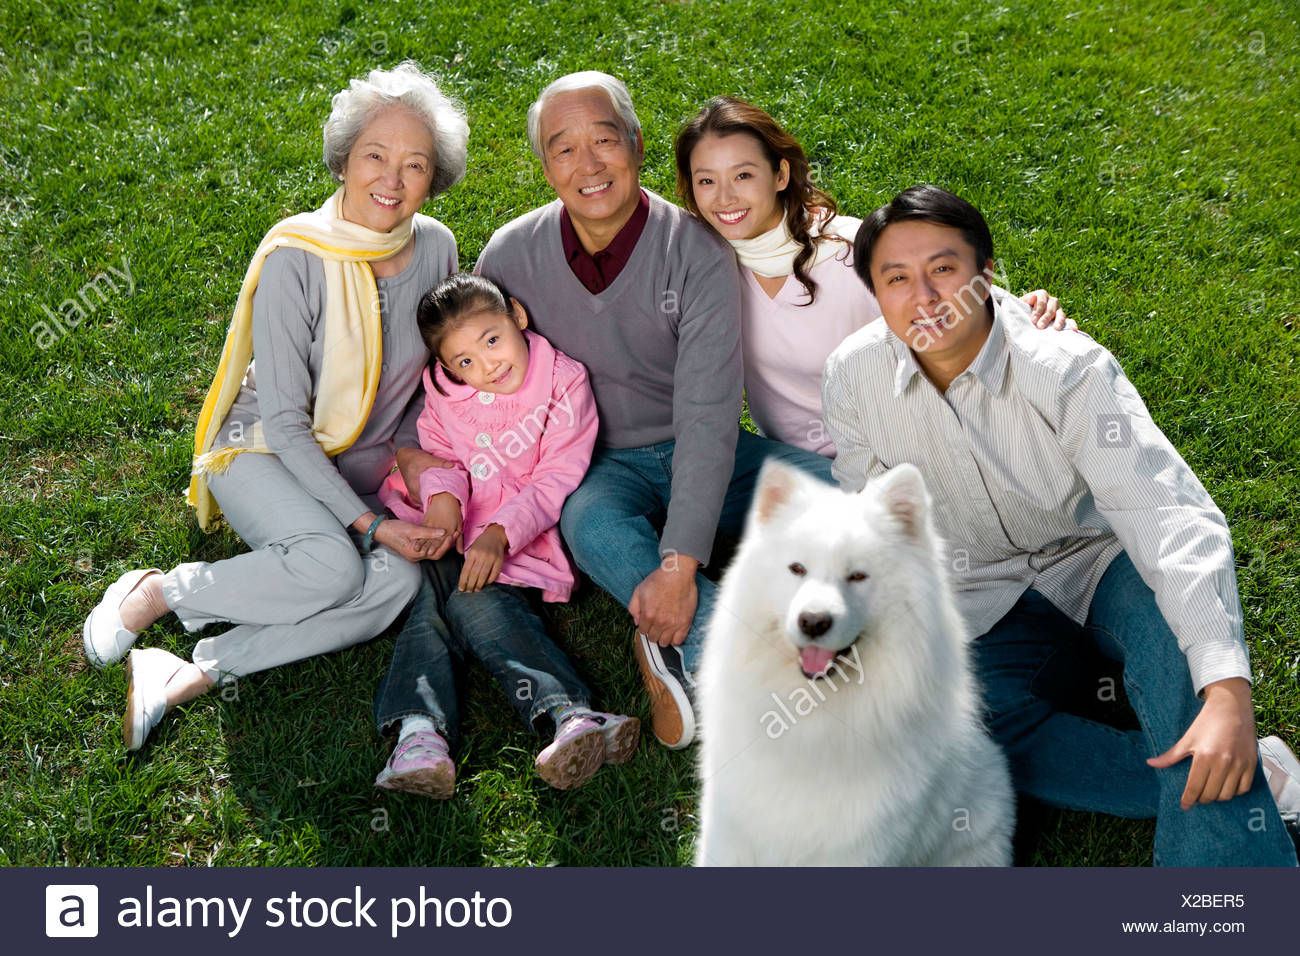 Portrait of a three generational family - Stock Image